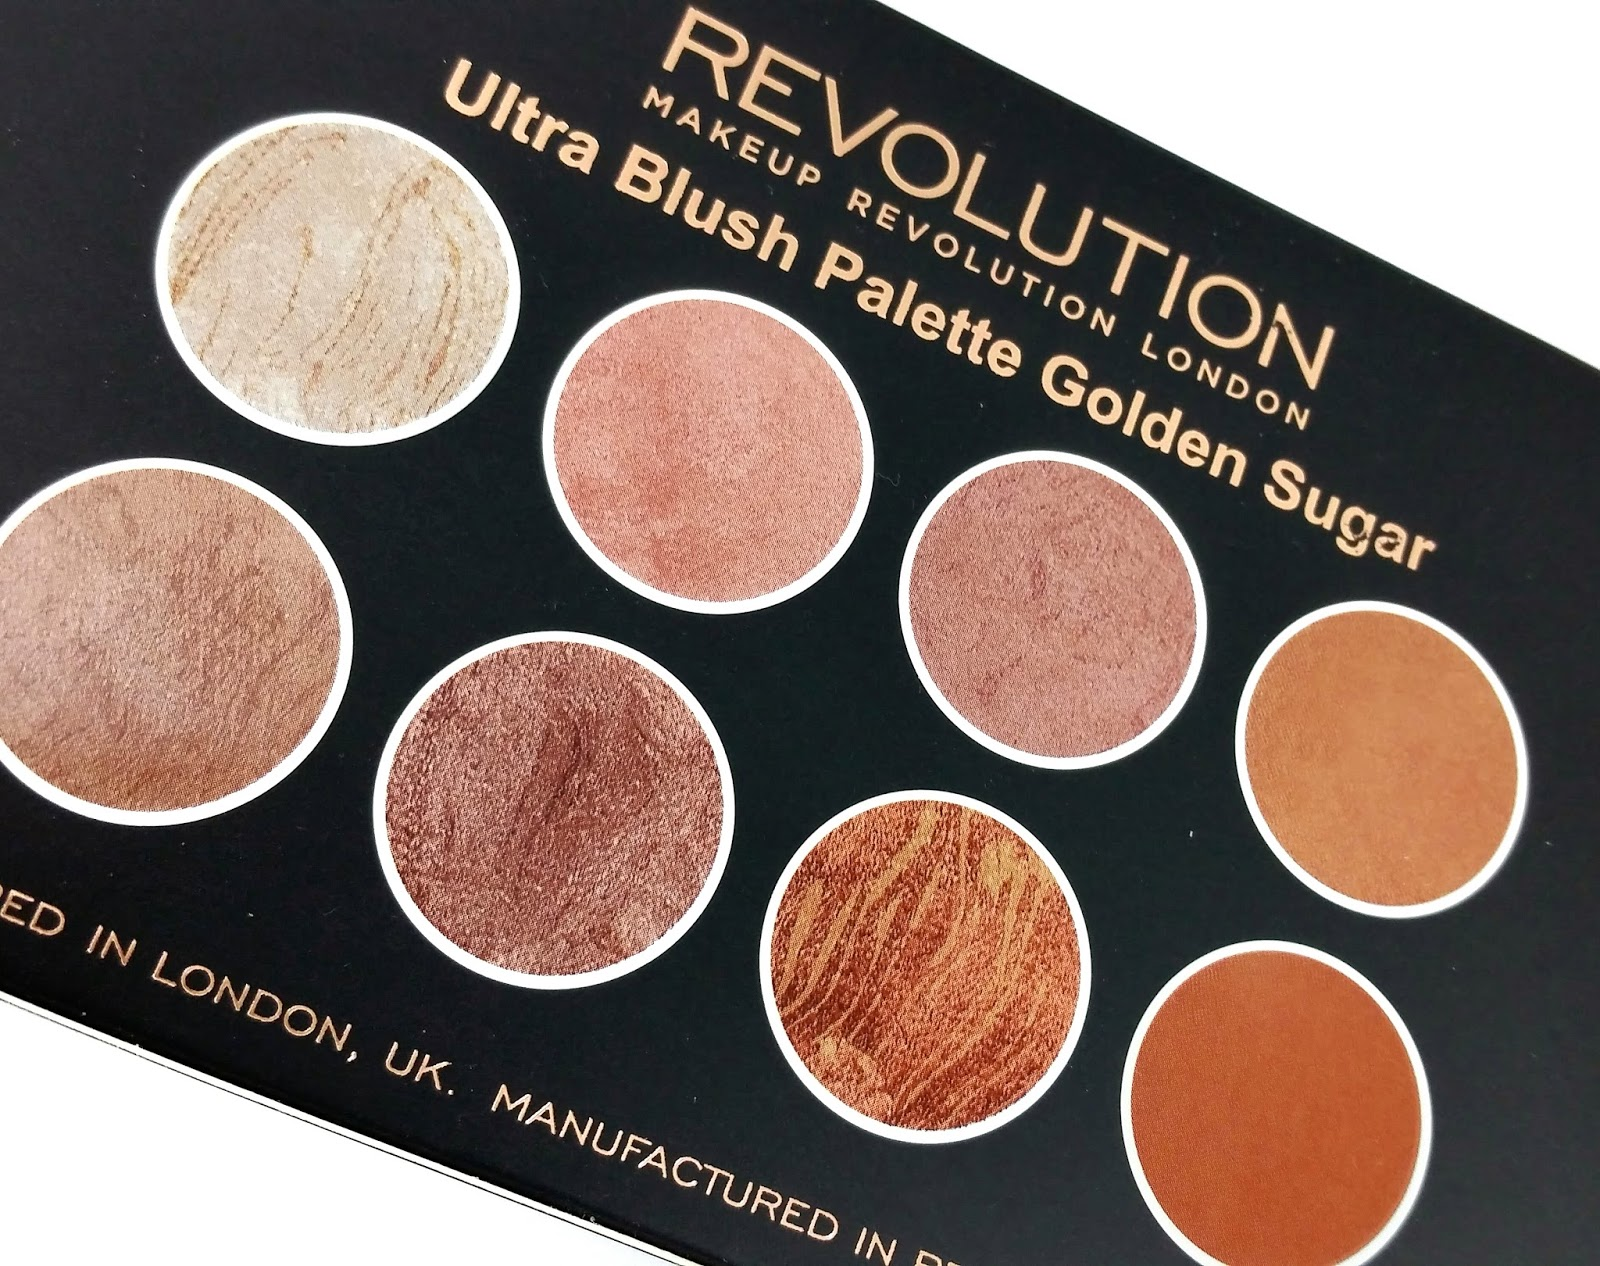 Makeup Revolution Ultra Blush Palette Golden Sugar Review Swatches Make Up